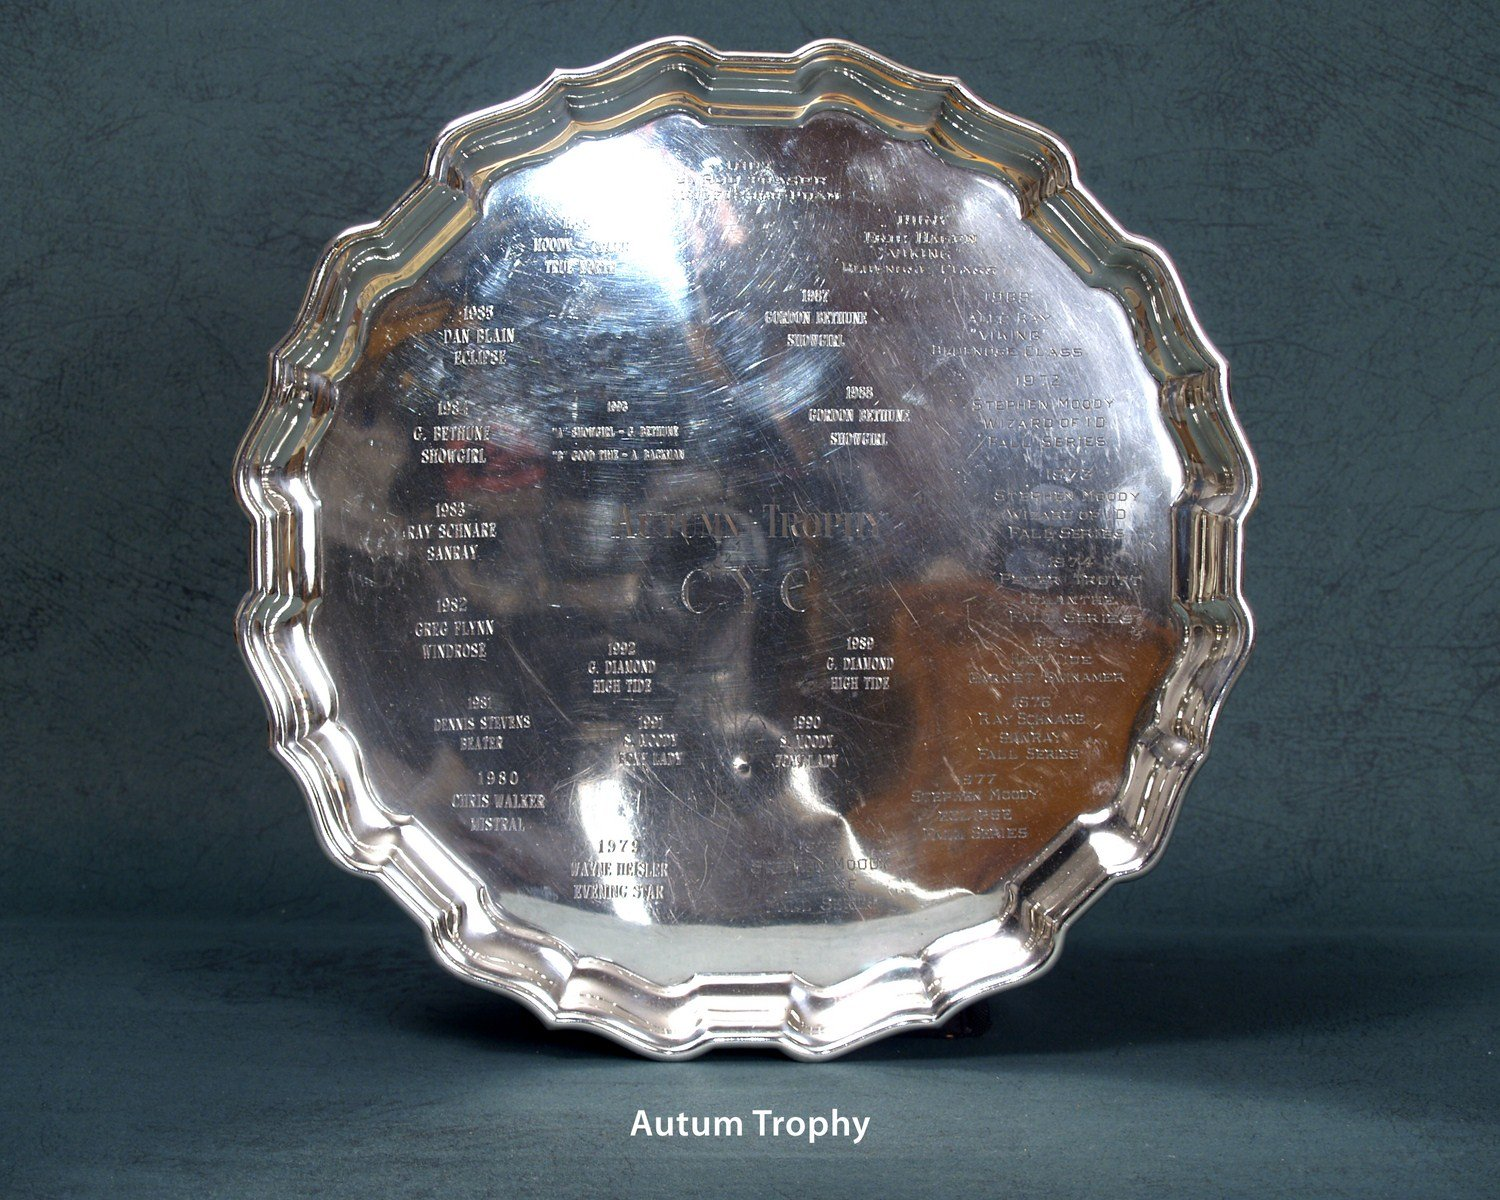 CYC September Trophies | Autum Trophy